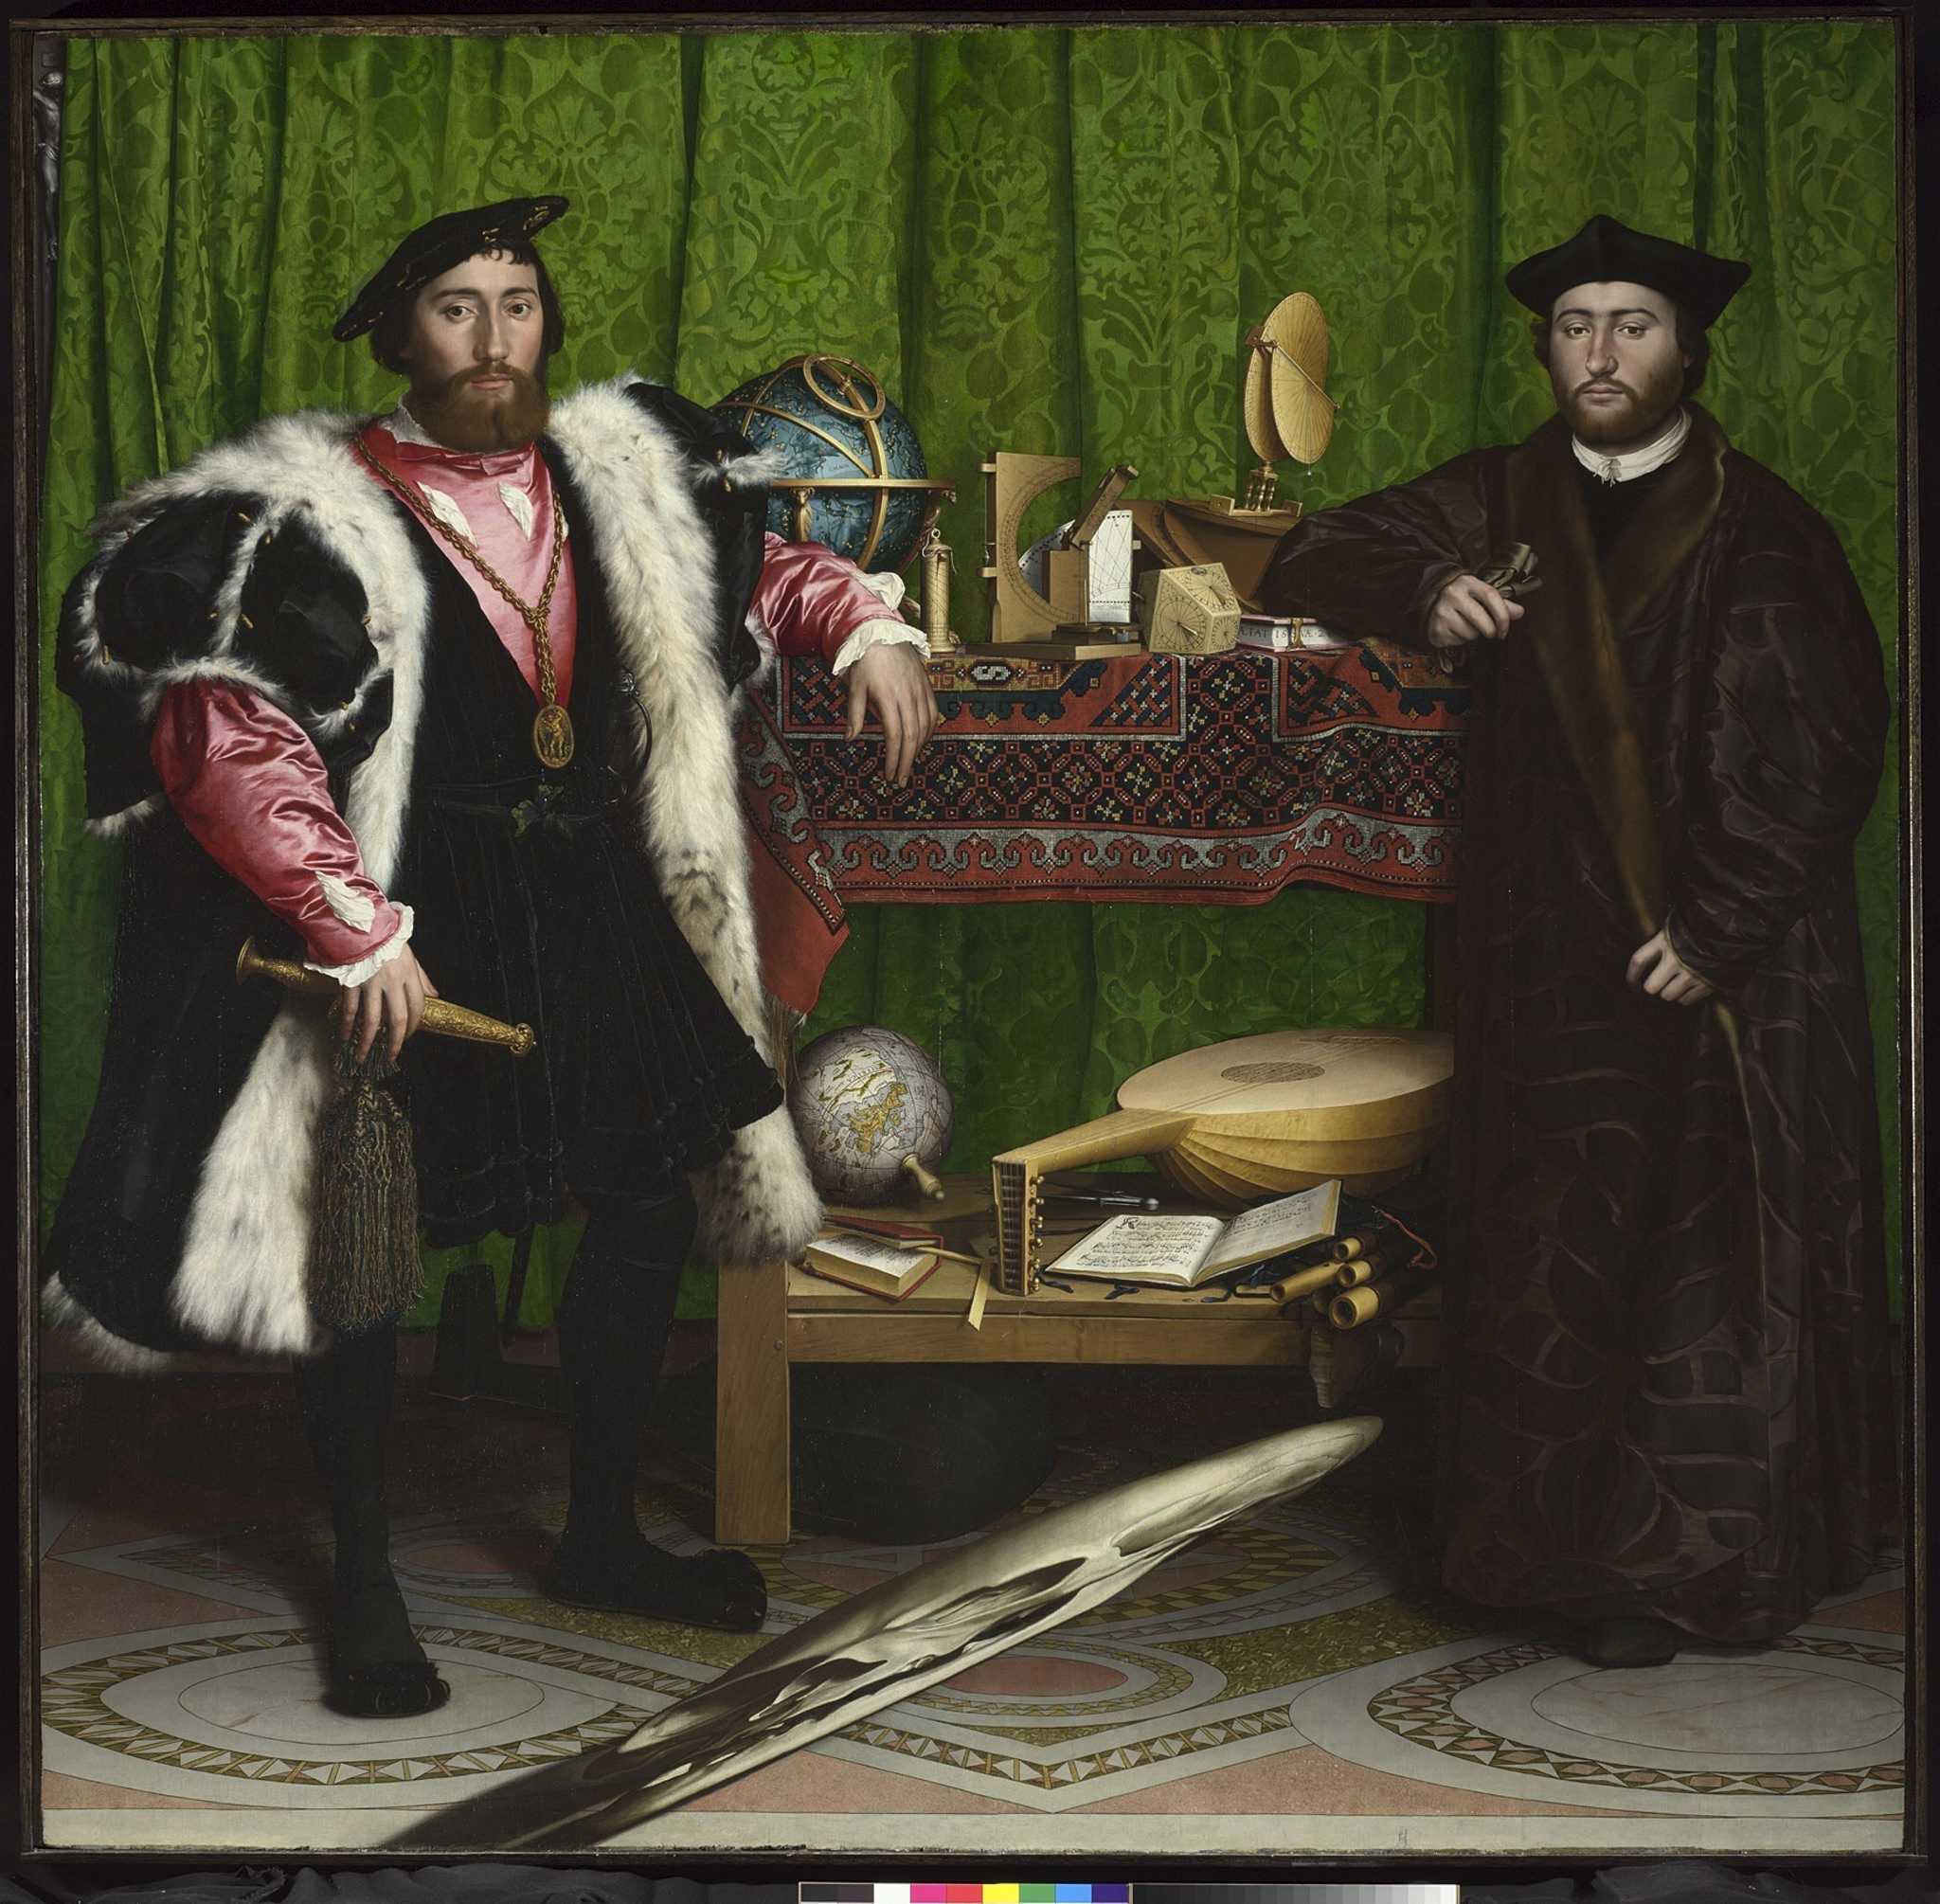 'The Ambassadors' (1533) by Hans Holbein the Younger